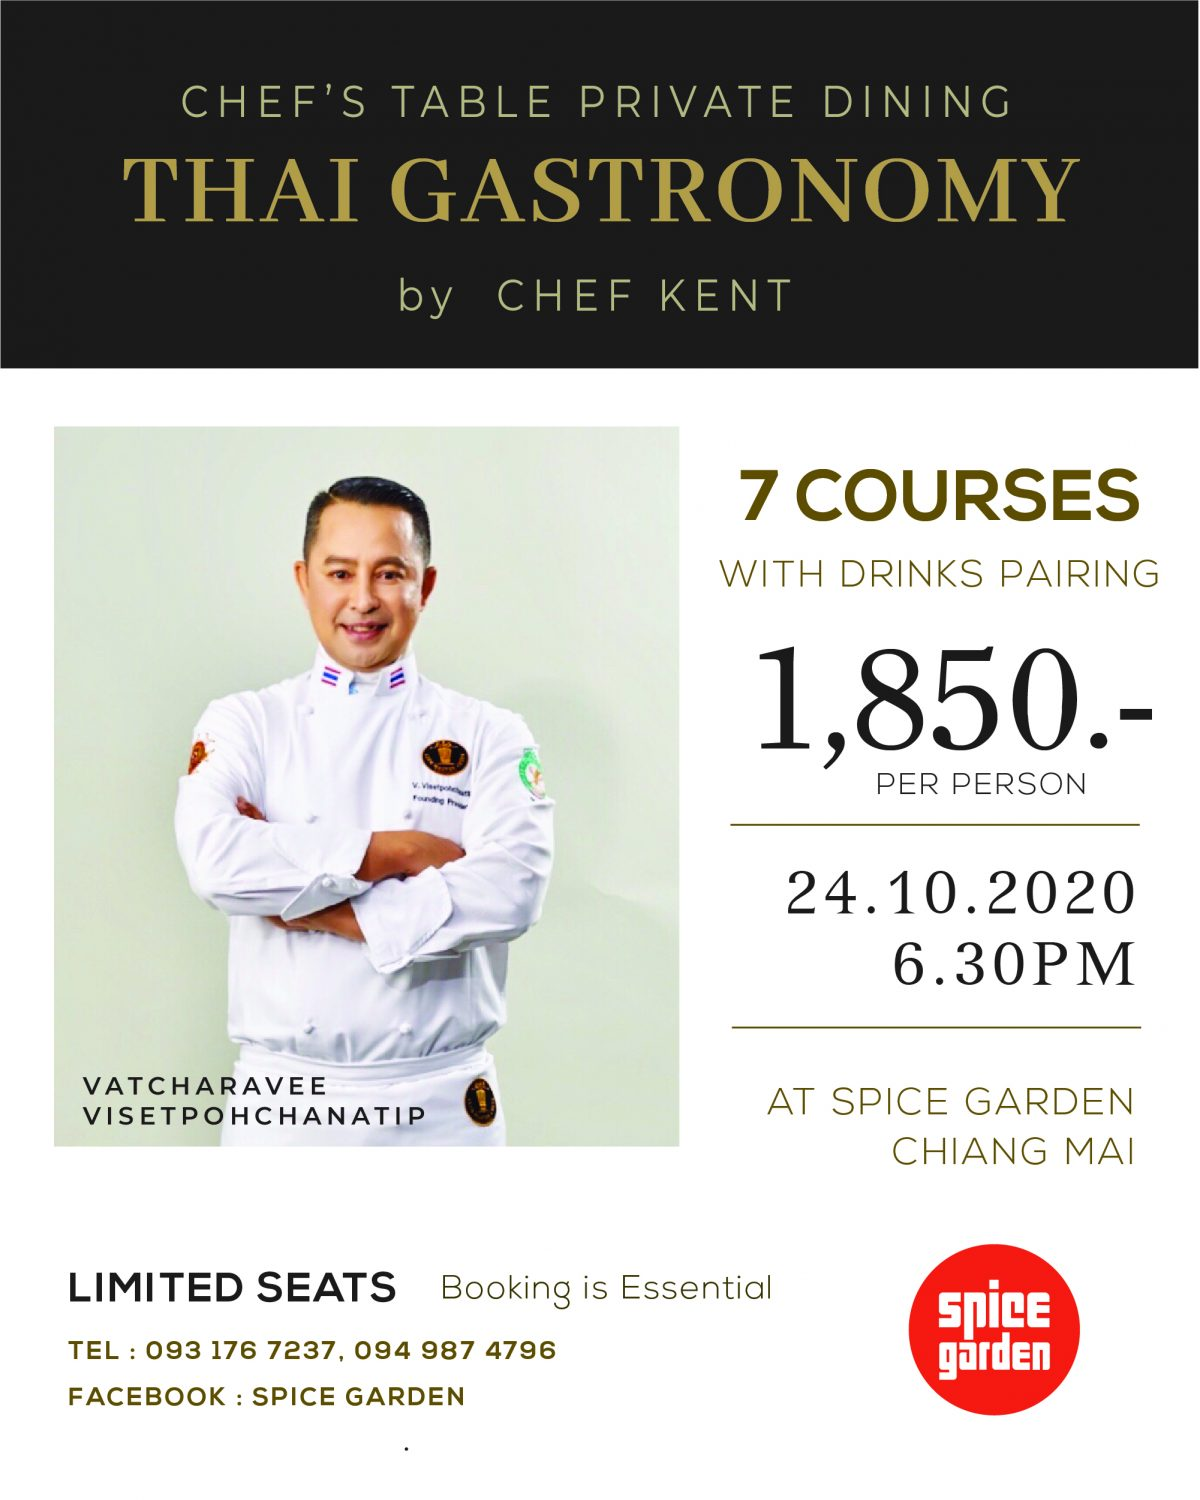 Thai Gastronomy by Chef KENT 24 Oct 2020